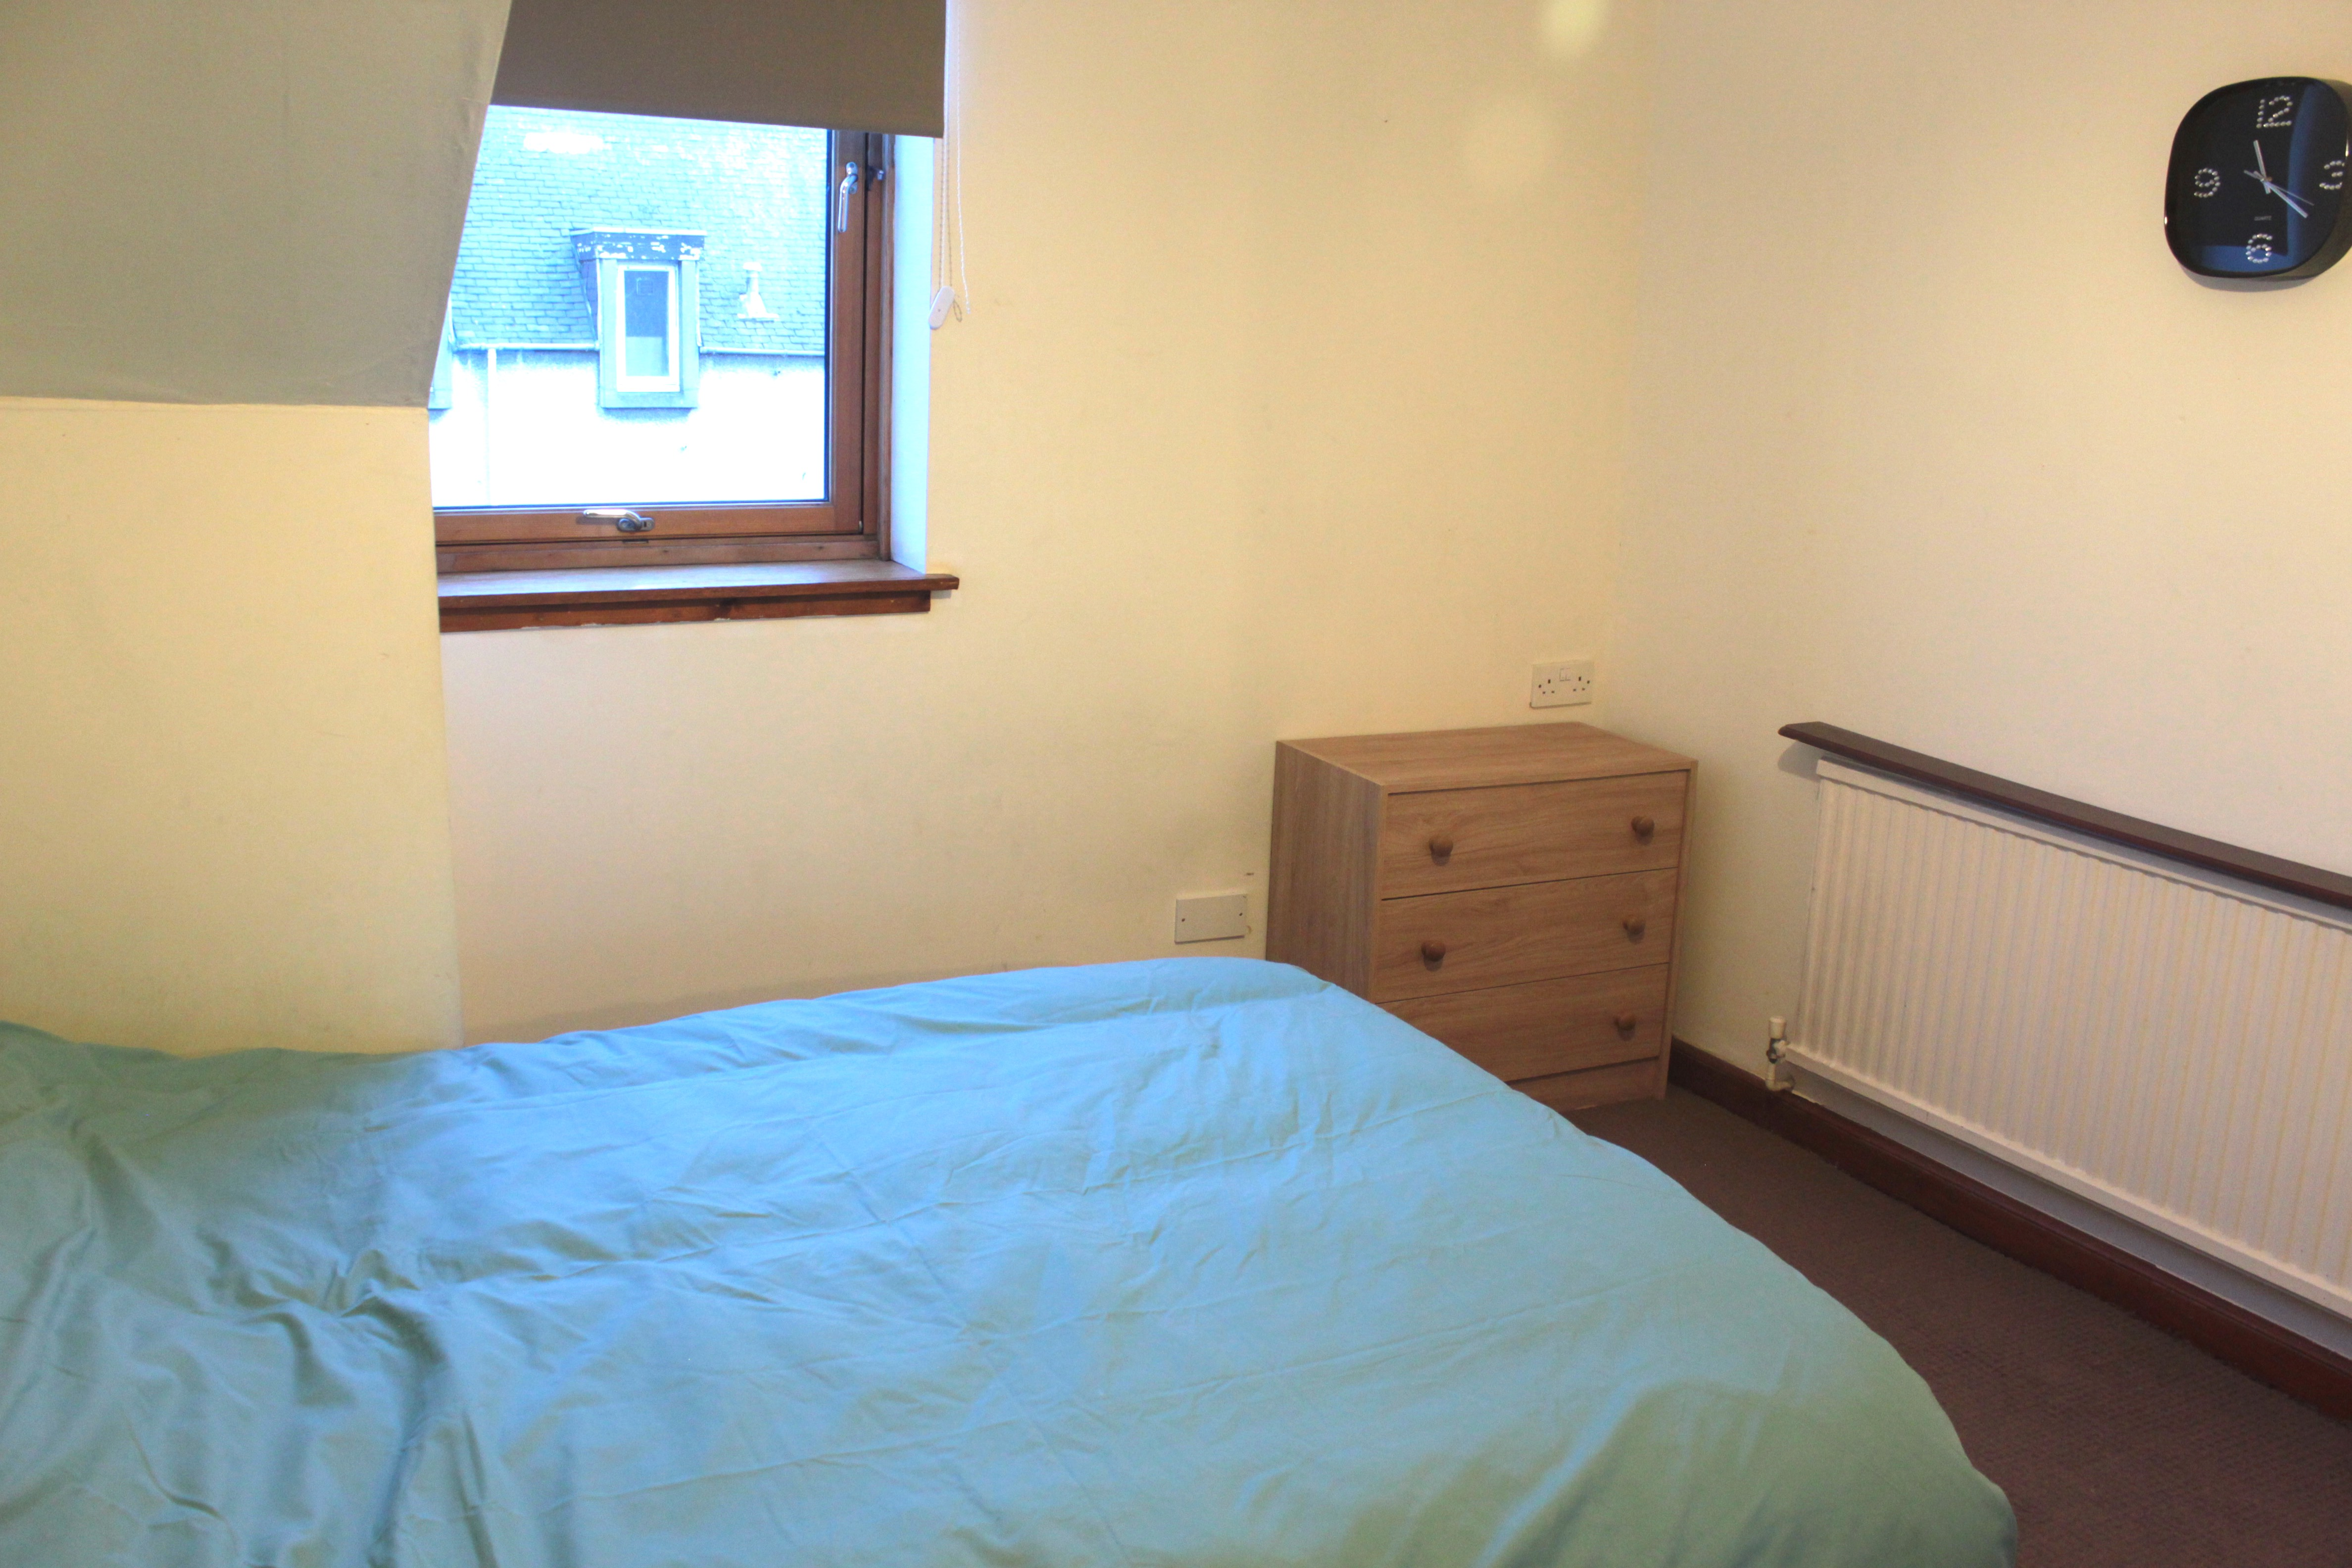 2 bedroom house to rent private landlord - 28 images - 2